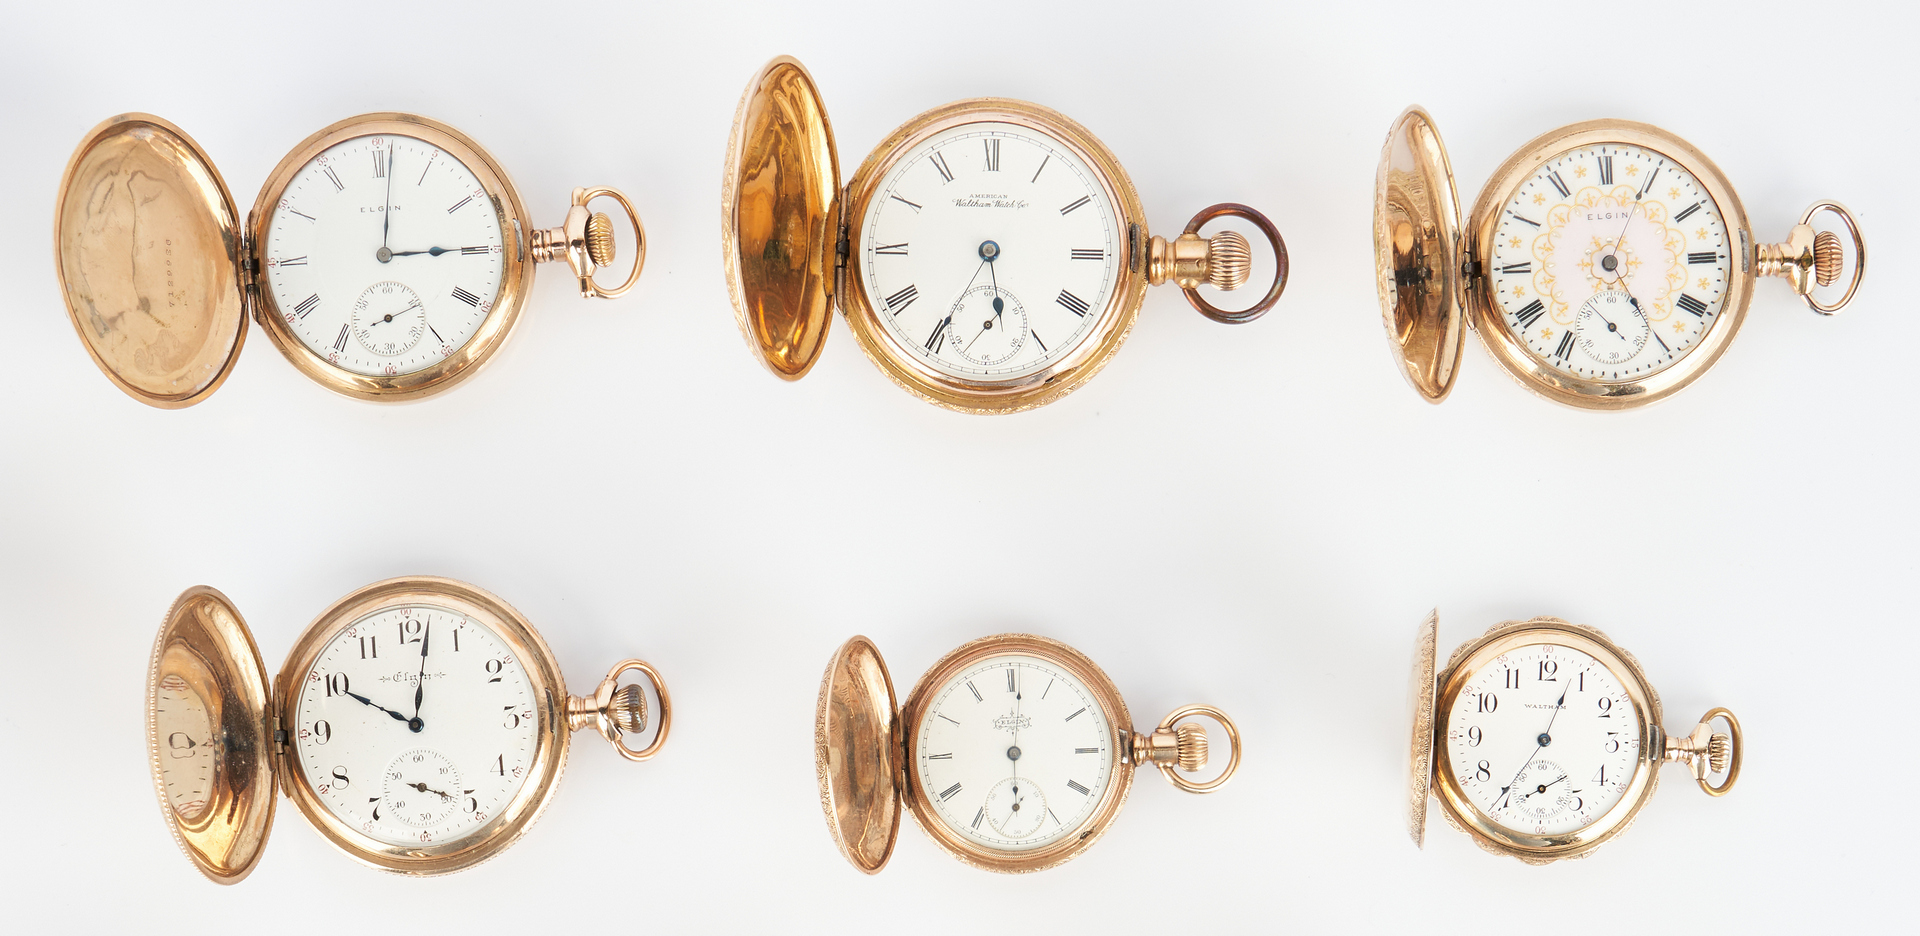 Lot 935: 10 Pocket Watches, incl. Elgin, Waltham & Illinois